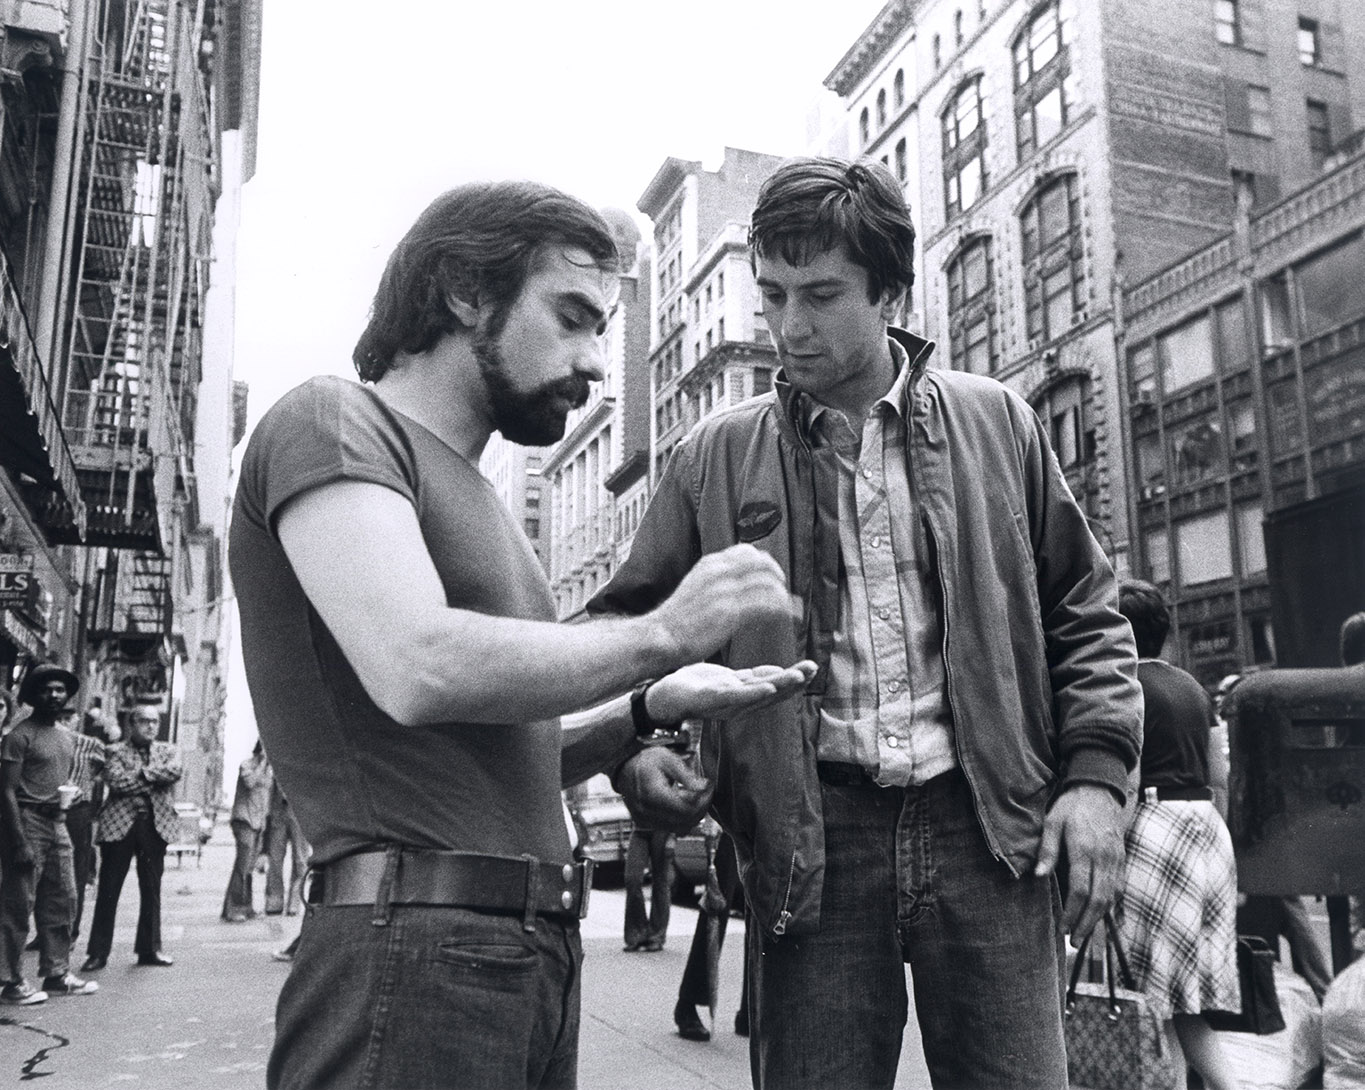 Martin Scorsese e Robert De Niro, Taxi Driver, 1976. Martin Scorsese Collection, New York.